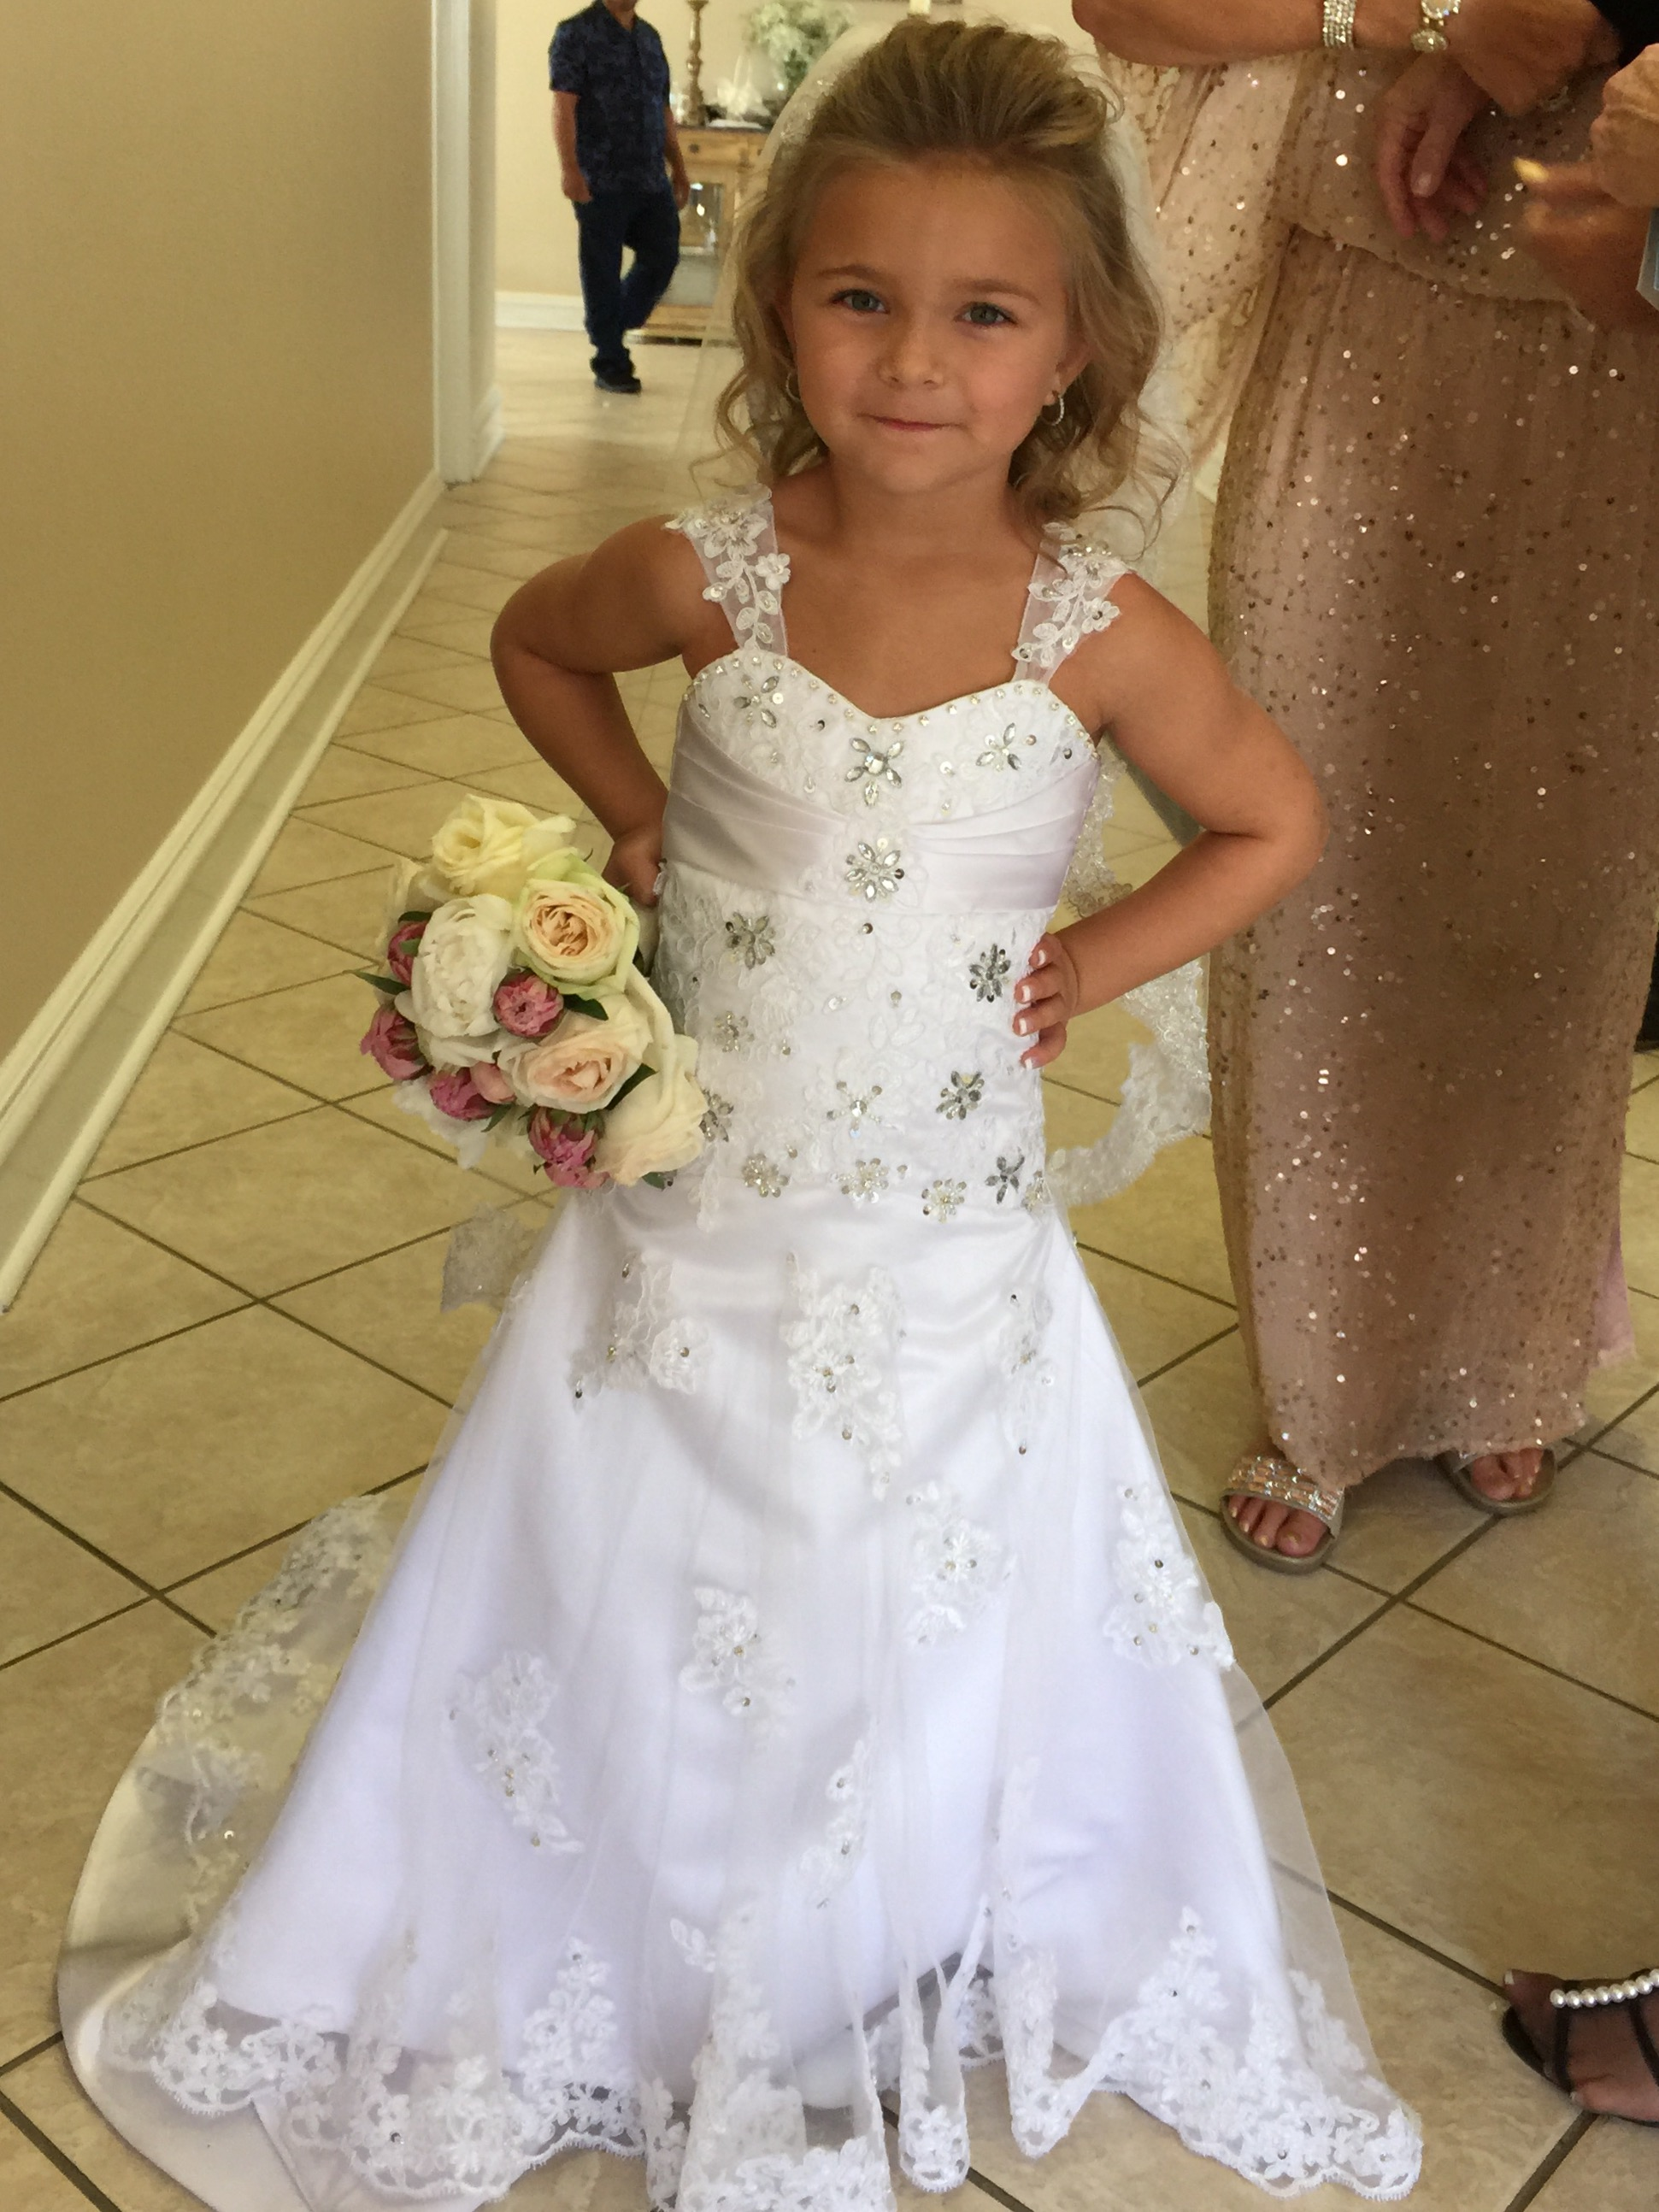 Gallery of wedding pictures and special event memories for Flower girls wedding dress